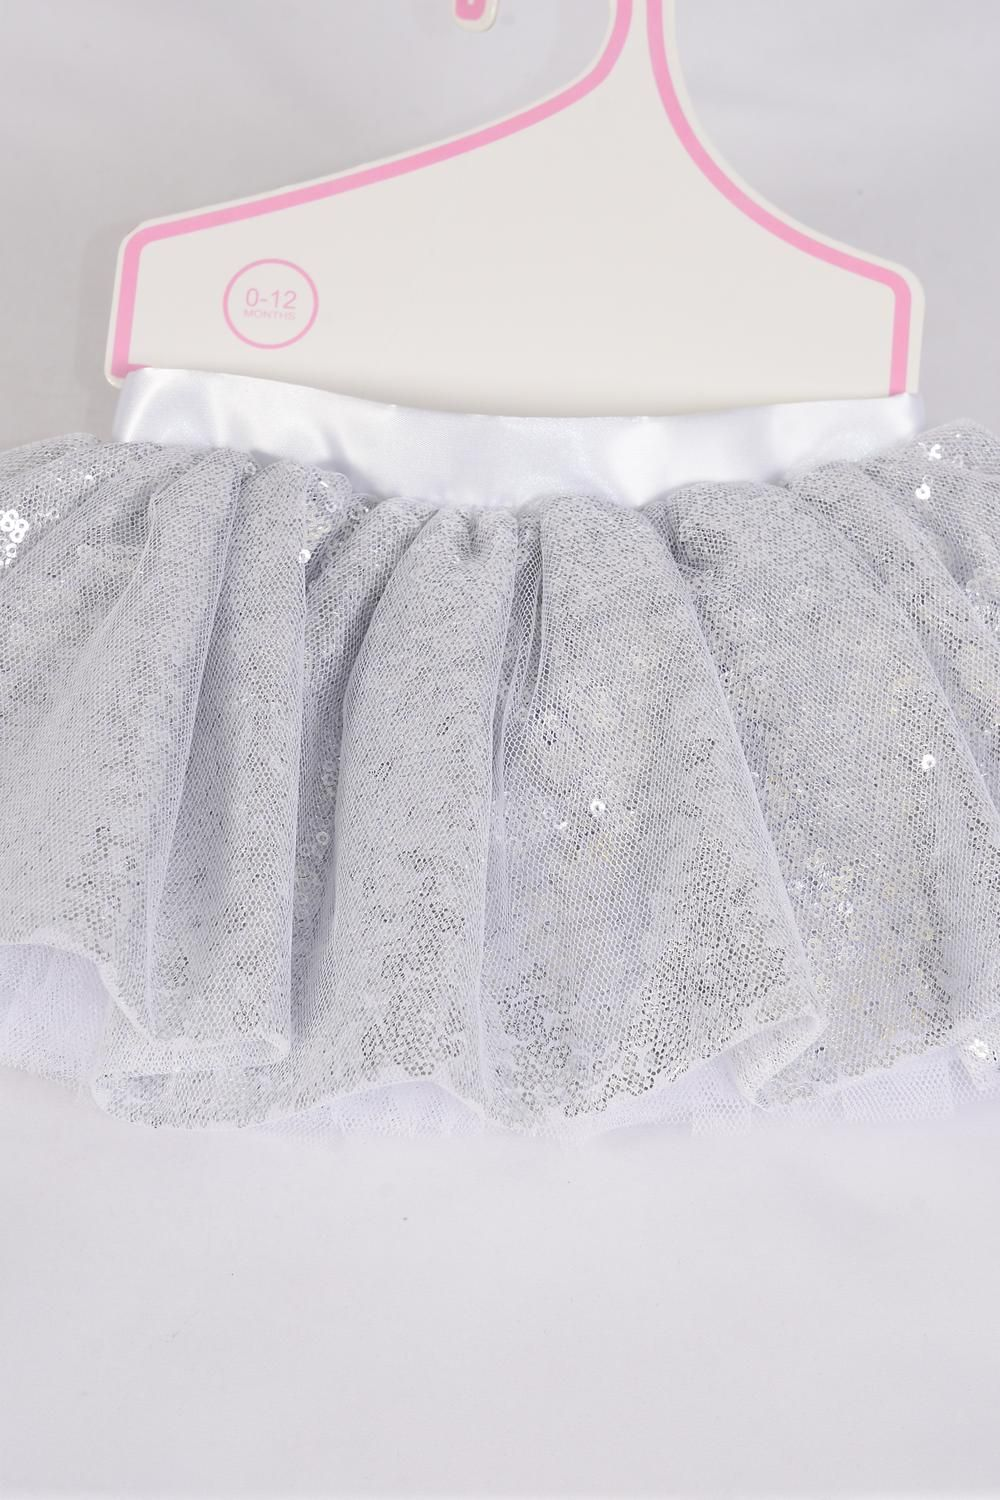 Tutu Dress Iridescent Sequin Silver/PC **Silver** Size-0-12 month,Display Card & UPC Code